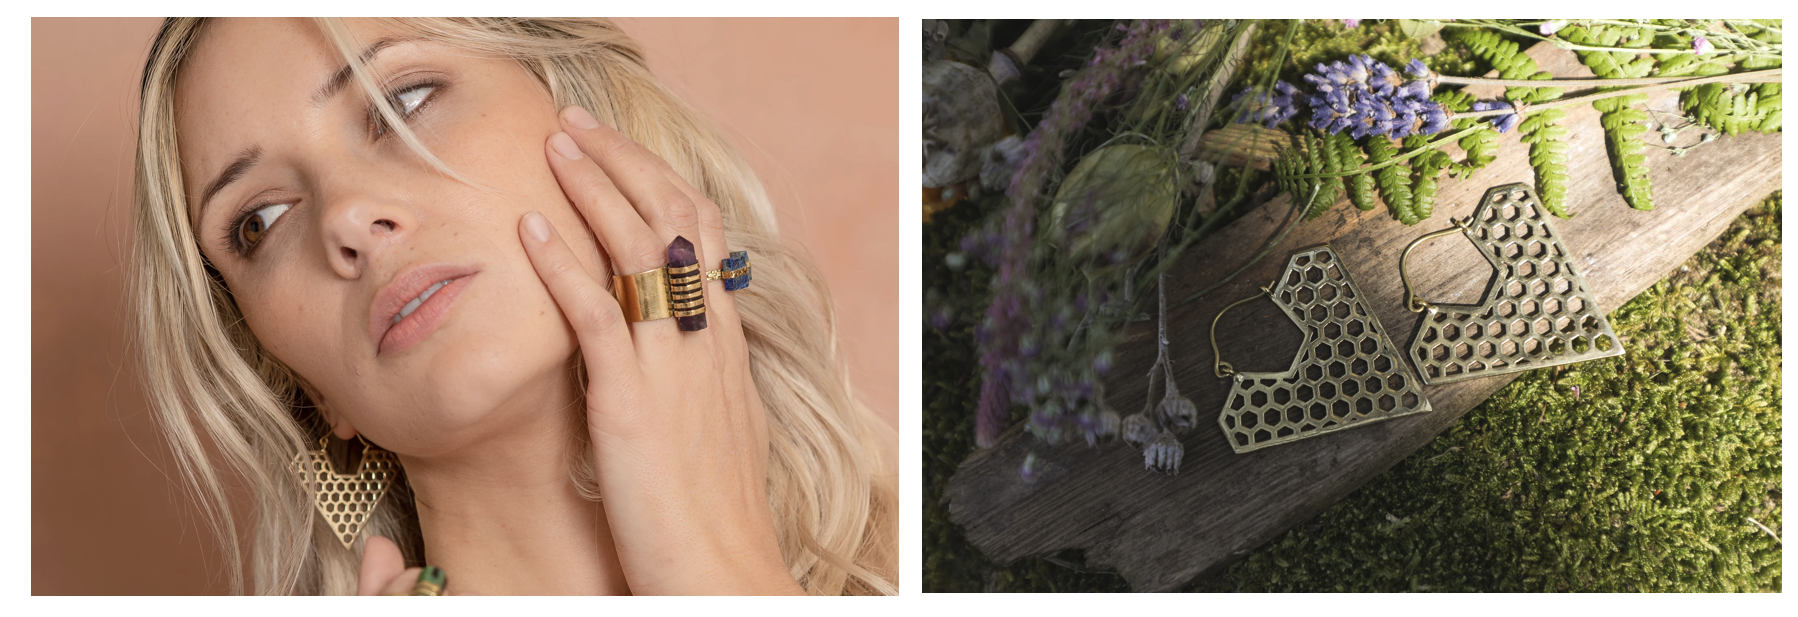 crystal pendulum ring, gold amythist ring, chunky rings, geometric jewellery, ethical company uk